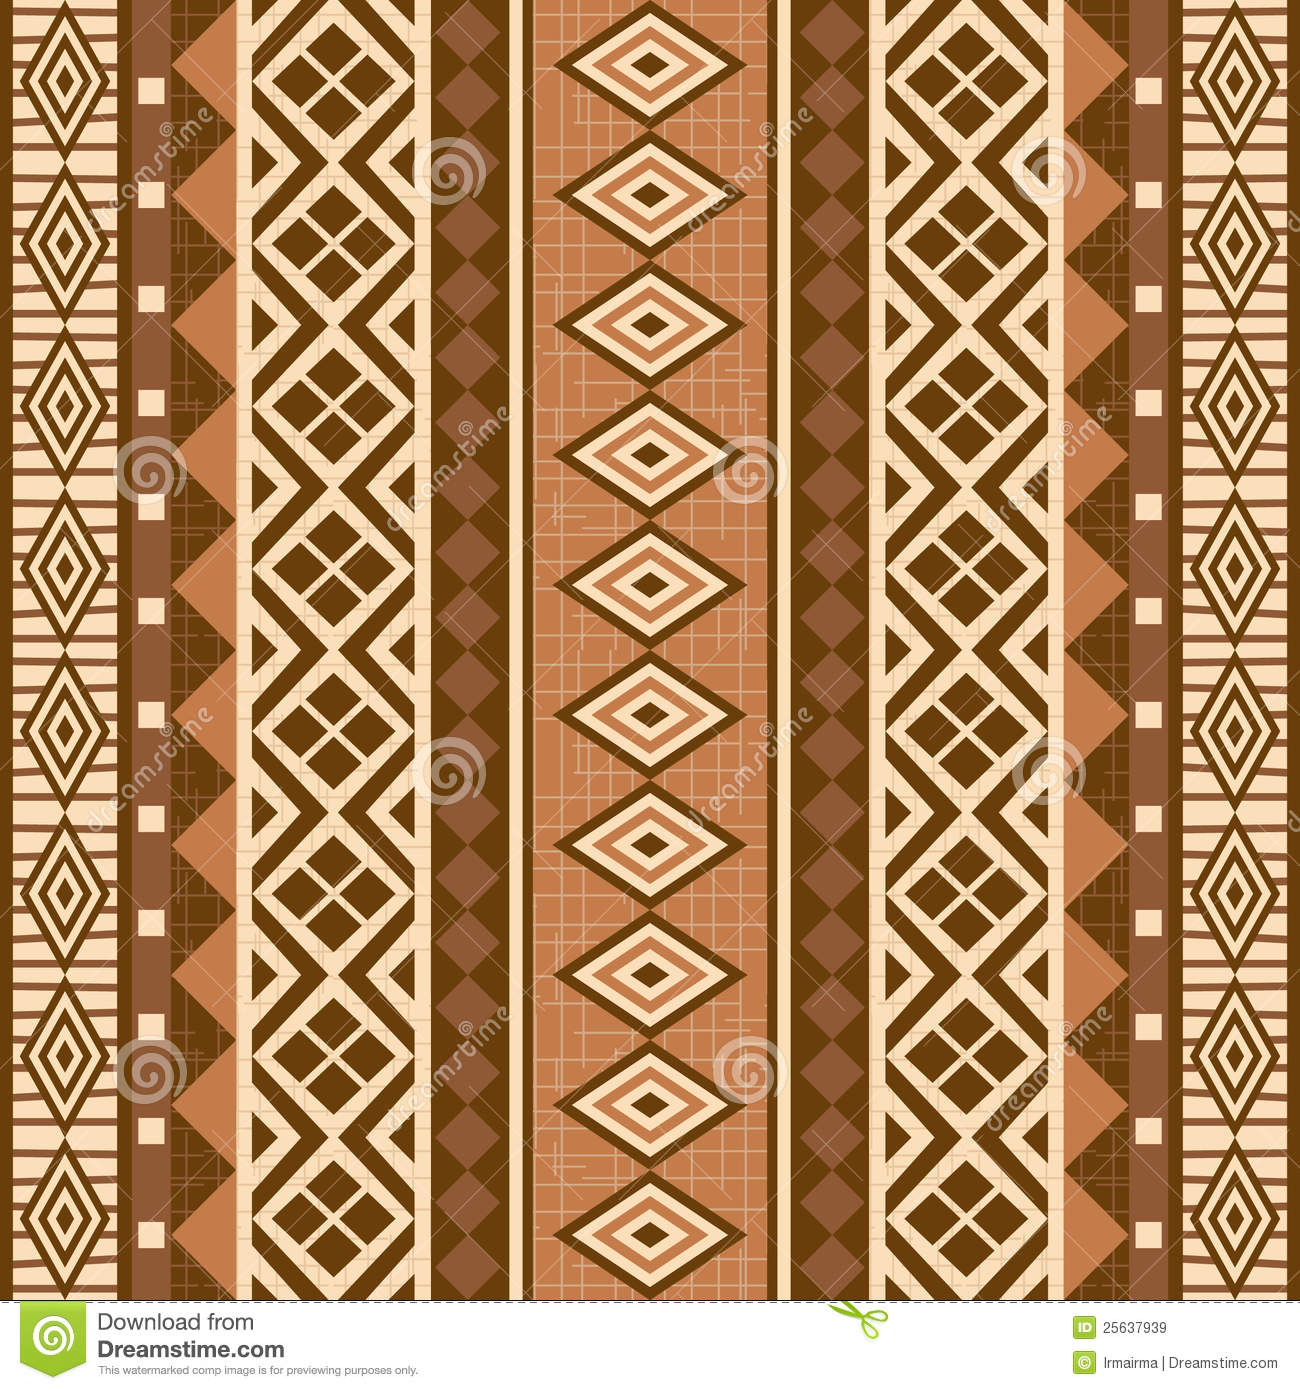 Geometrical ornamental pattern seamless texture african style. | 1300 x 1390 · 330 kB · jpeg